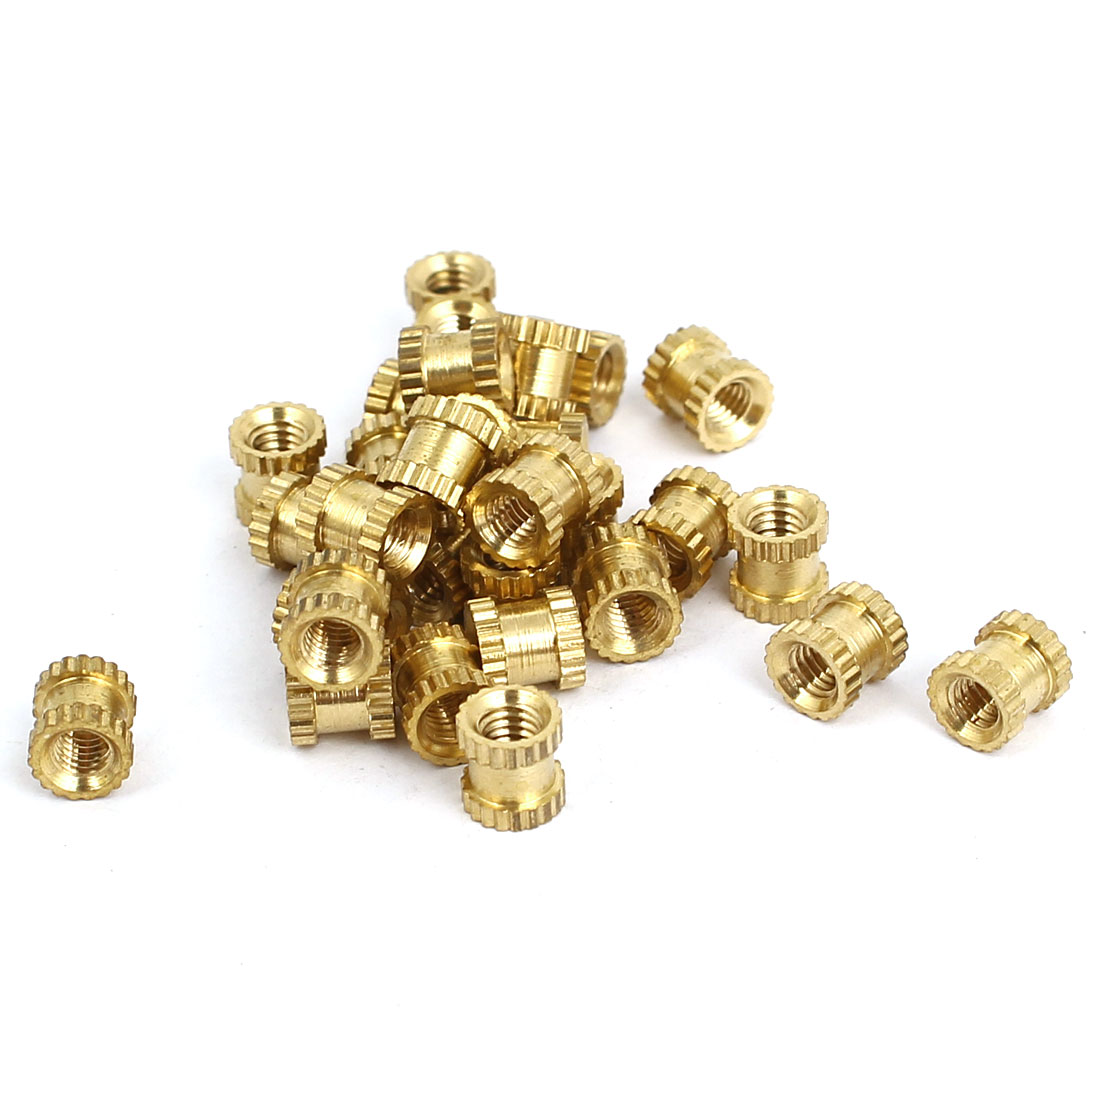 Unique Bargains M3x5mmx5mm Female Threaded Brass Knurled Insert Embedded Nuts Gold Tone 30pcs